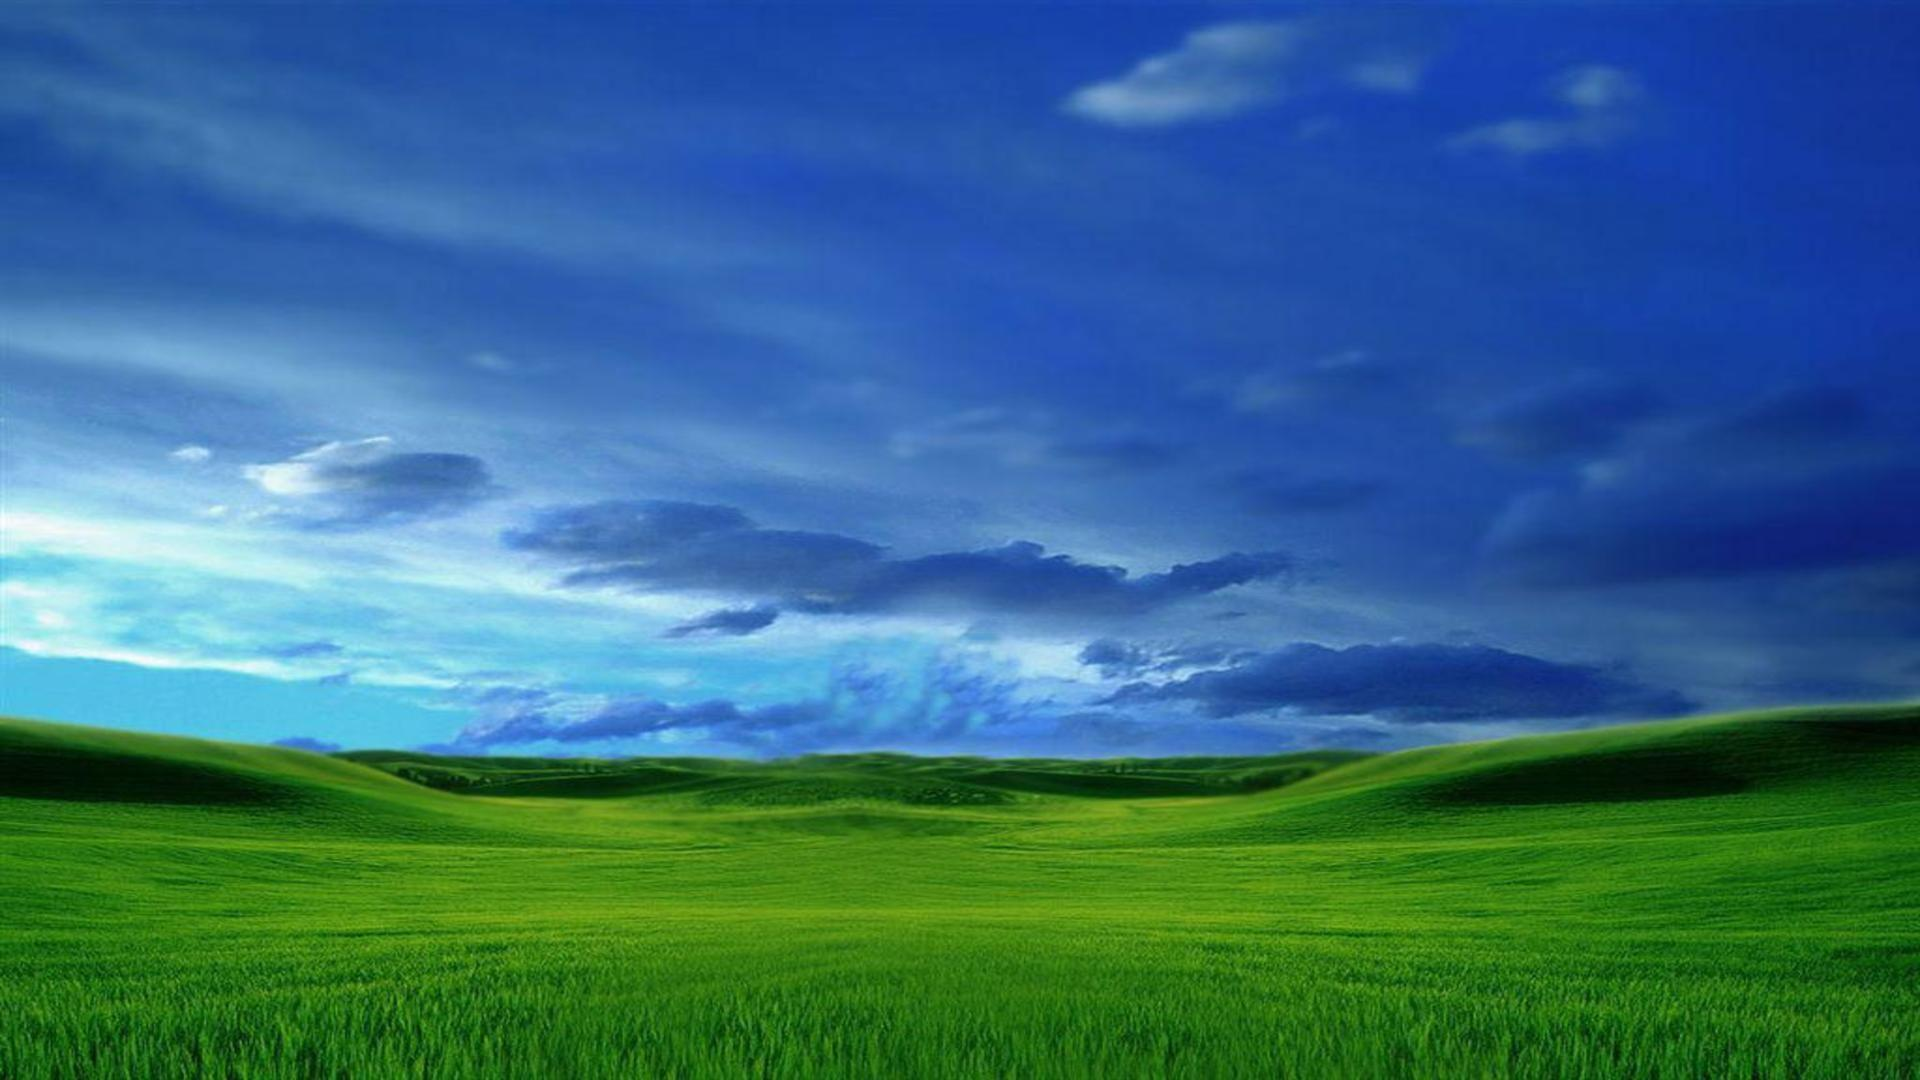 microsoft windows wallpapers by gifteddeviant - photo #47